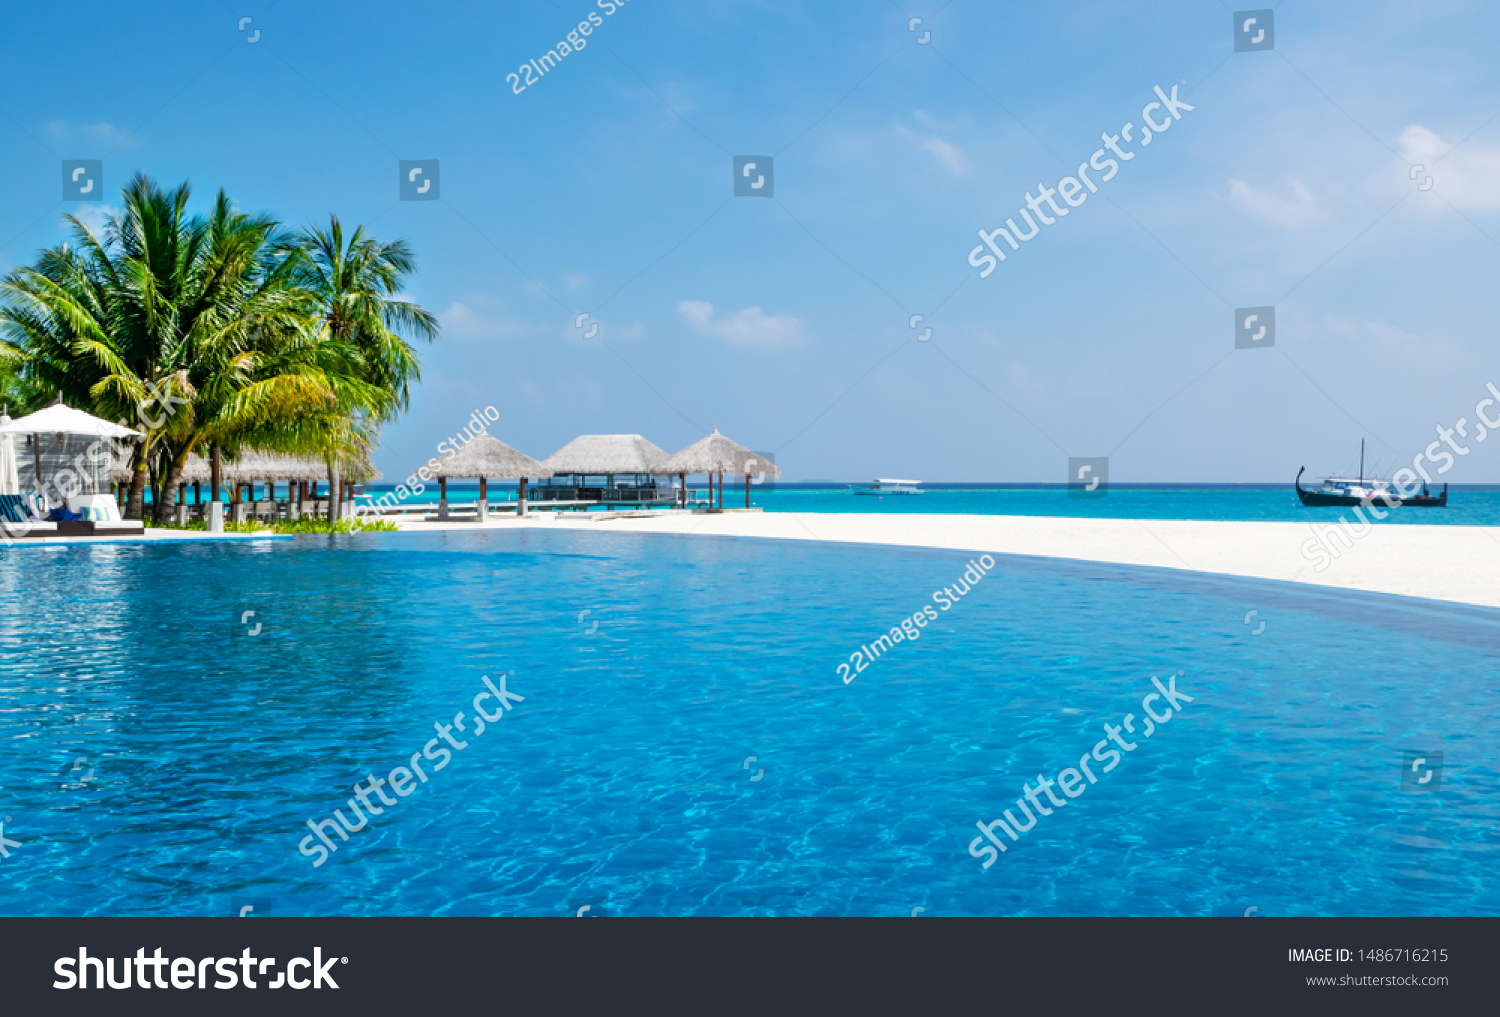 Swimming pool with view on beach and ocean in resort of Maldives. Velassaru island holidays. #1486716215